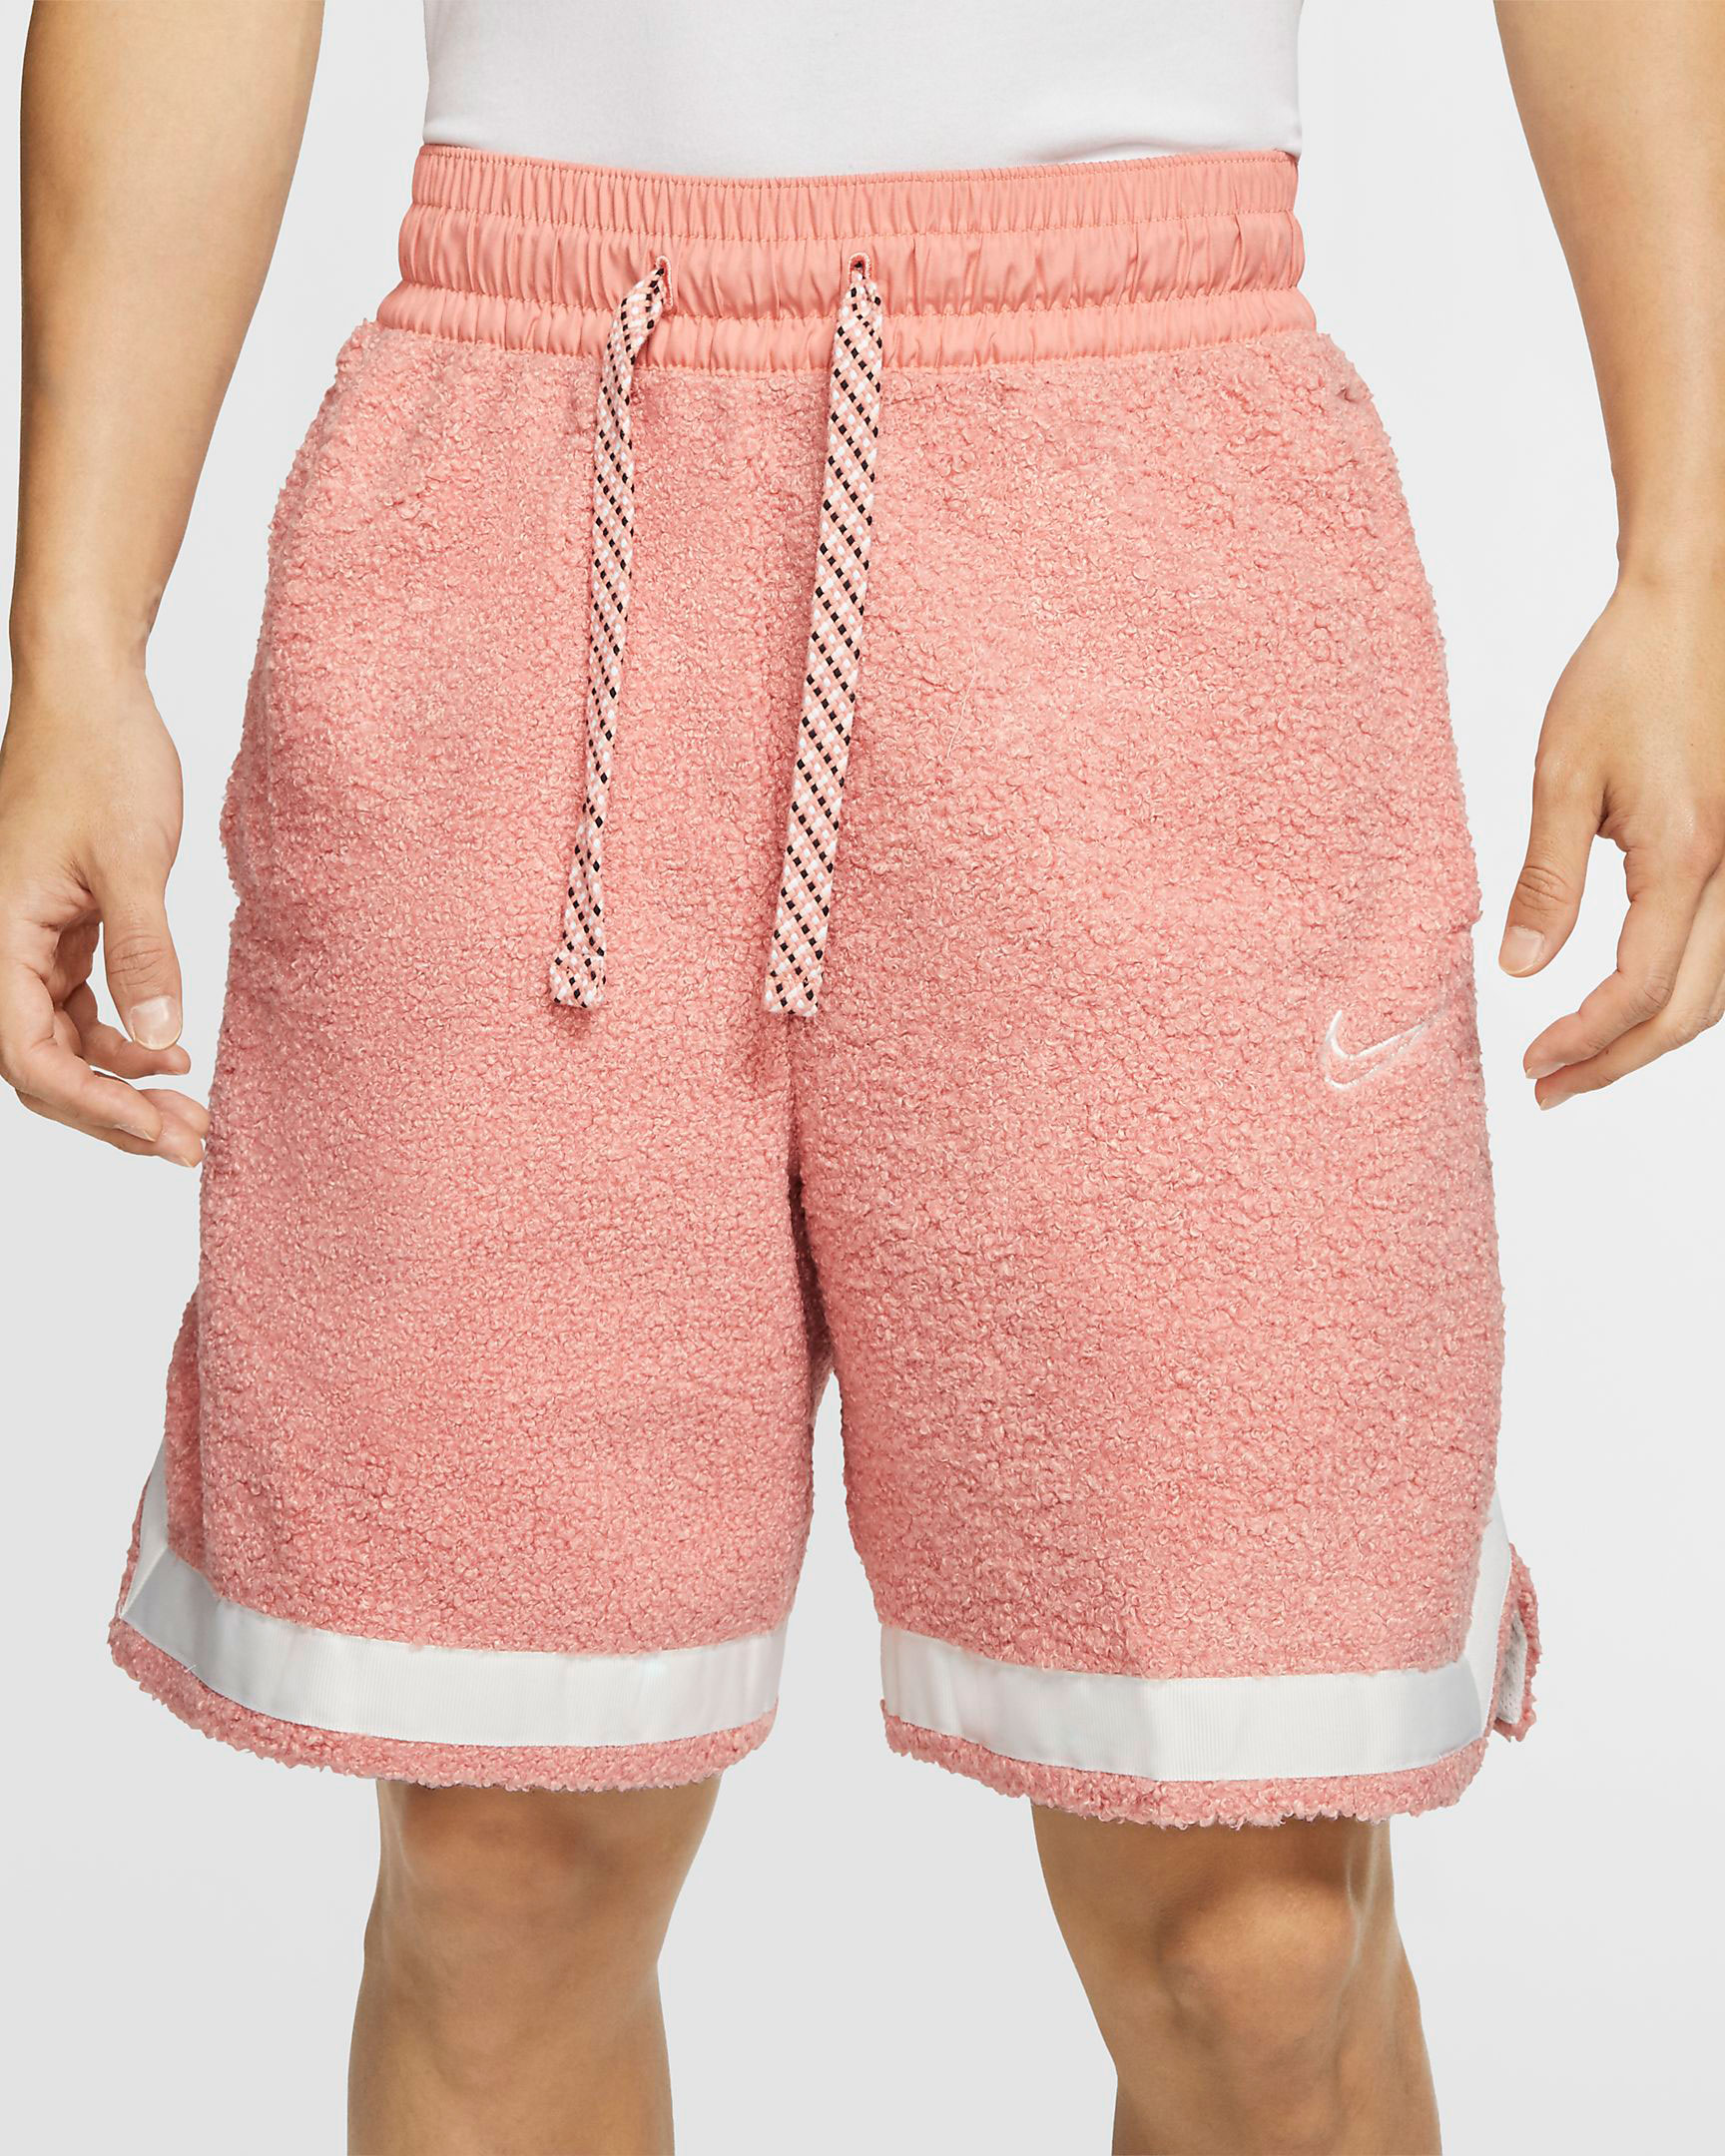 nike-kd-12-aunt-pearl-shorts-match-2